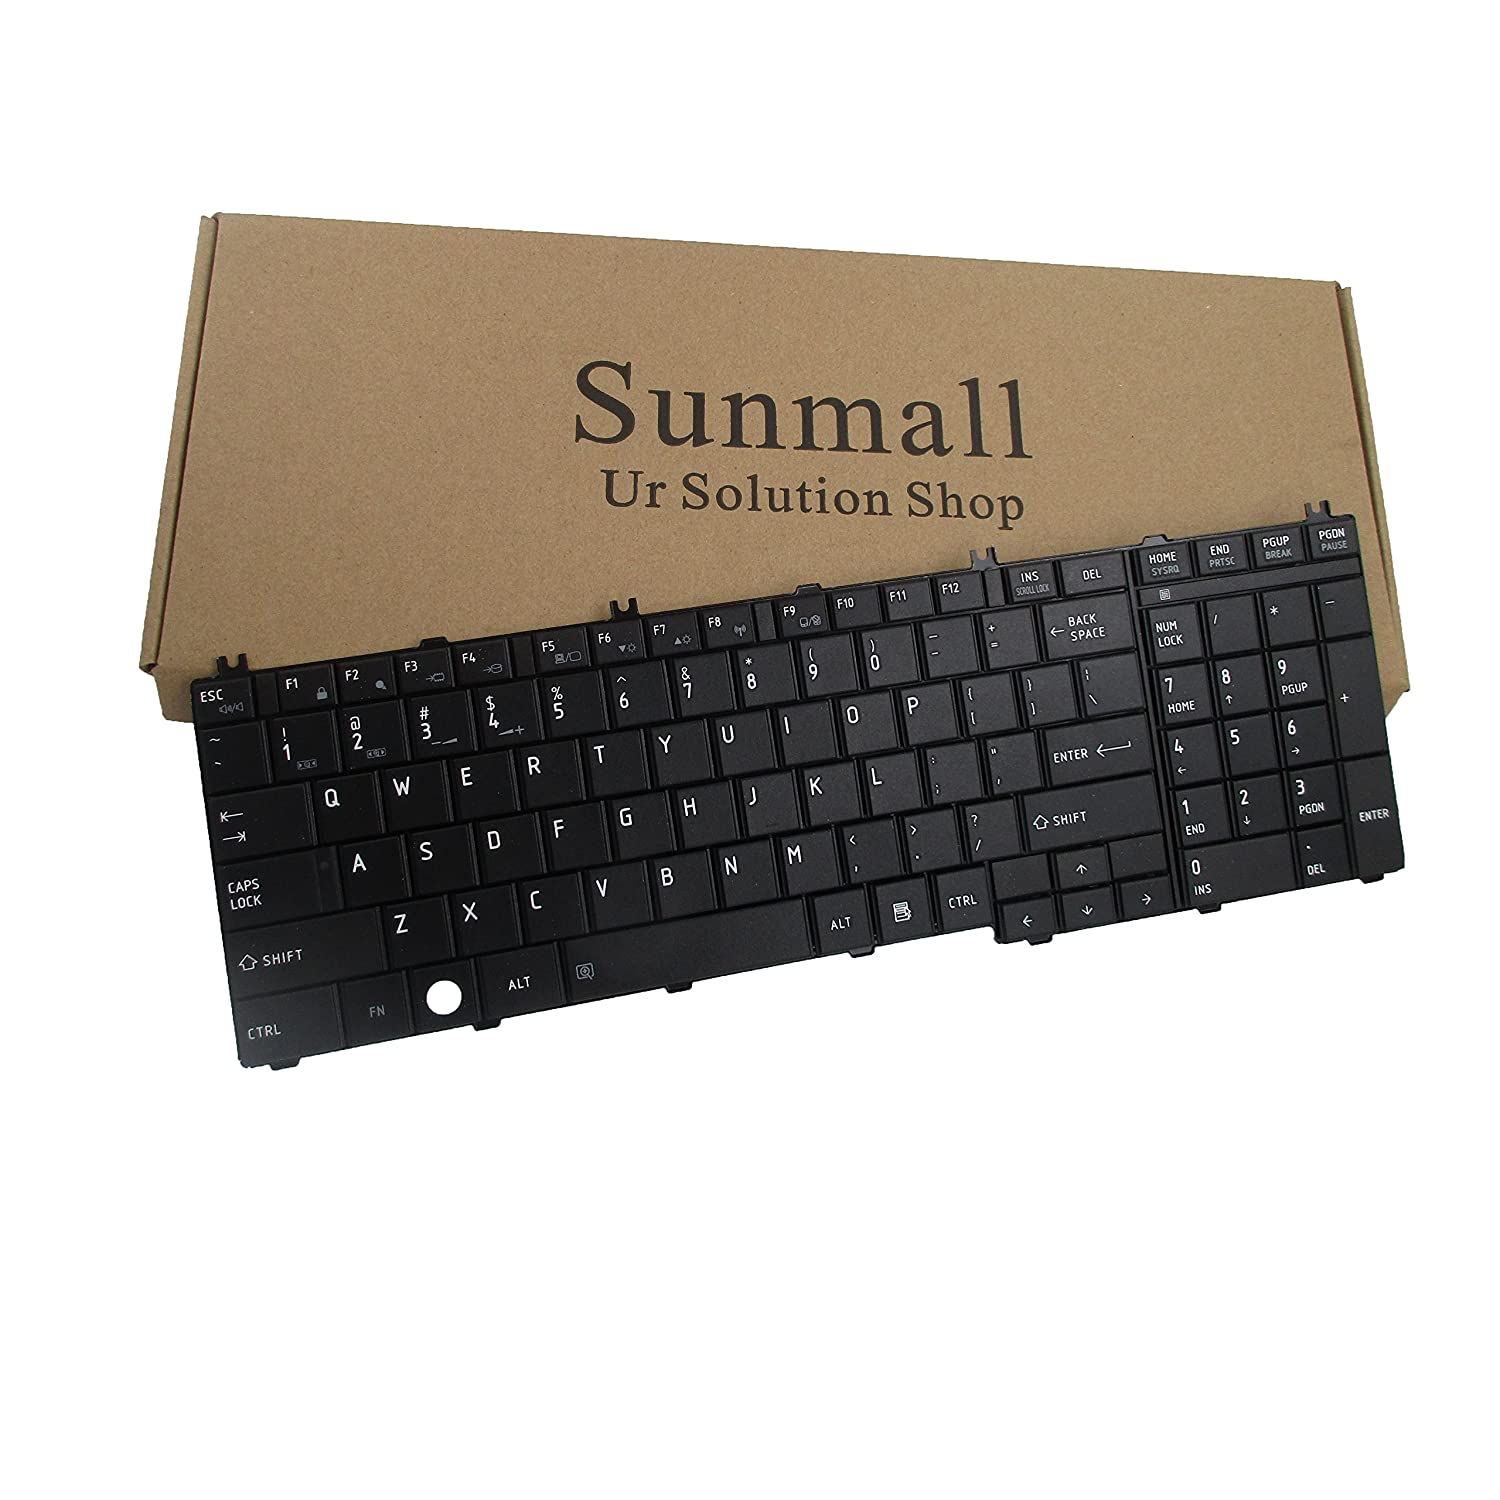 SUNMALL Laptop Replacement Keyboard for Toshiba Satellite Pro C650 C655 C650D C675D B350 T350 L650 L650D L655 L655D L670 L670D L675 L675D L750 L750D L755 L755D L770 L770D L775 L775D Series US Layout (Fulfillment by )